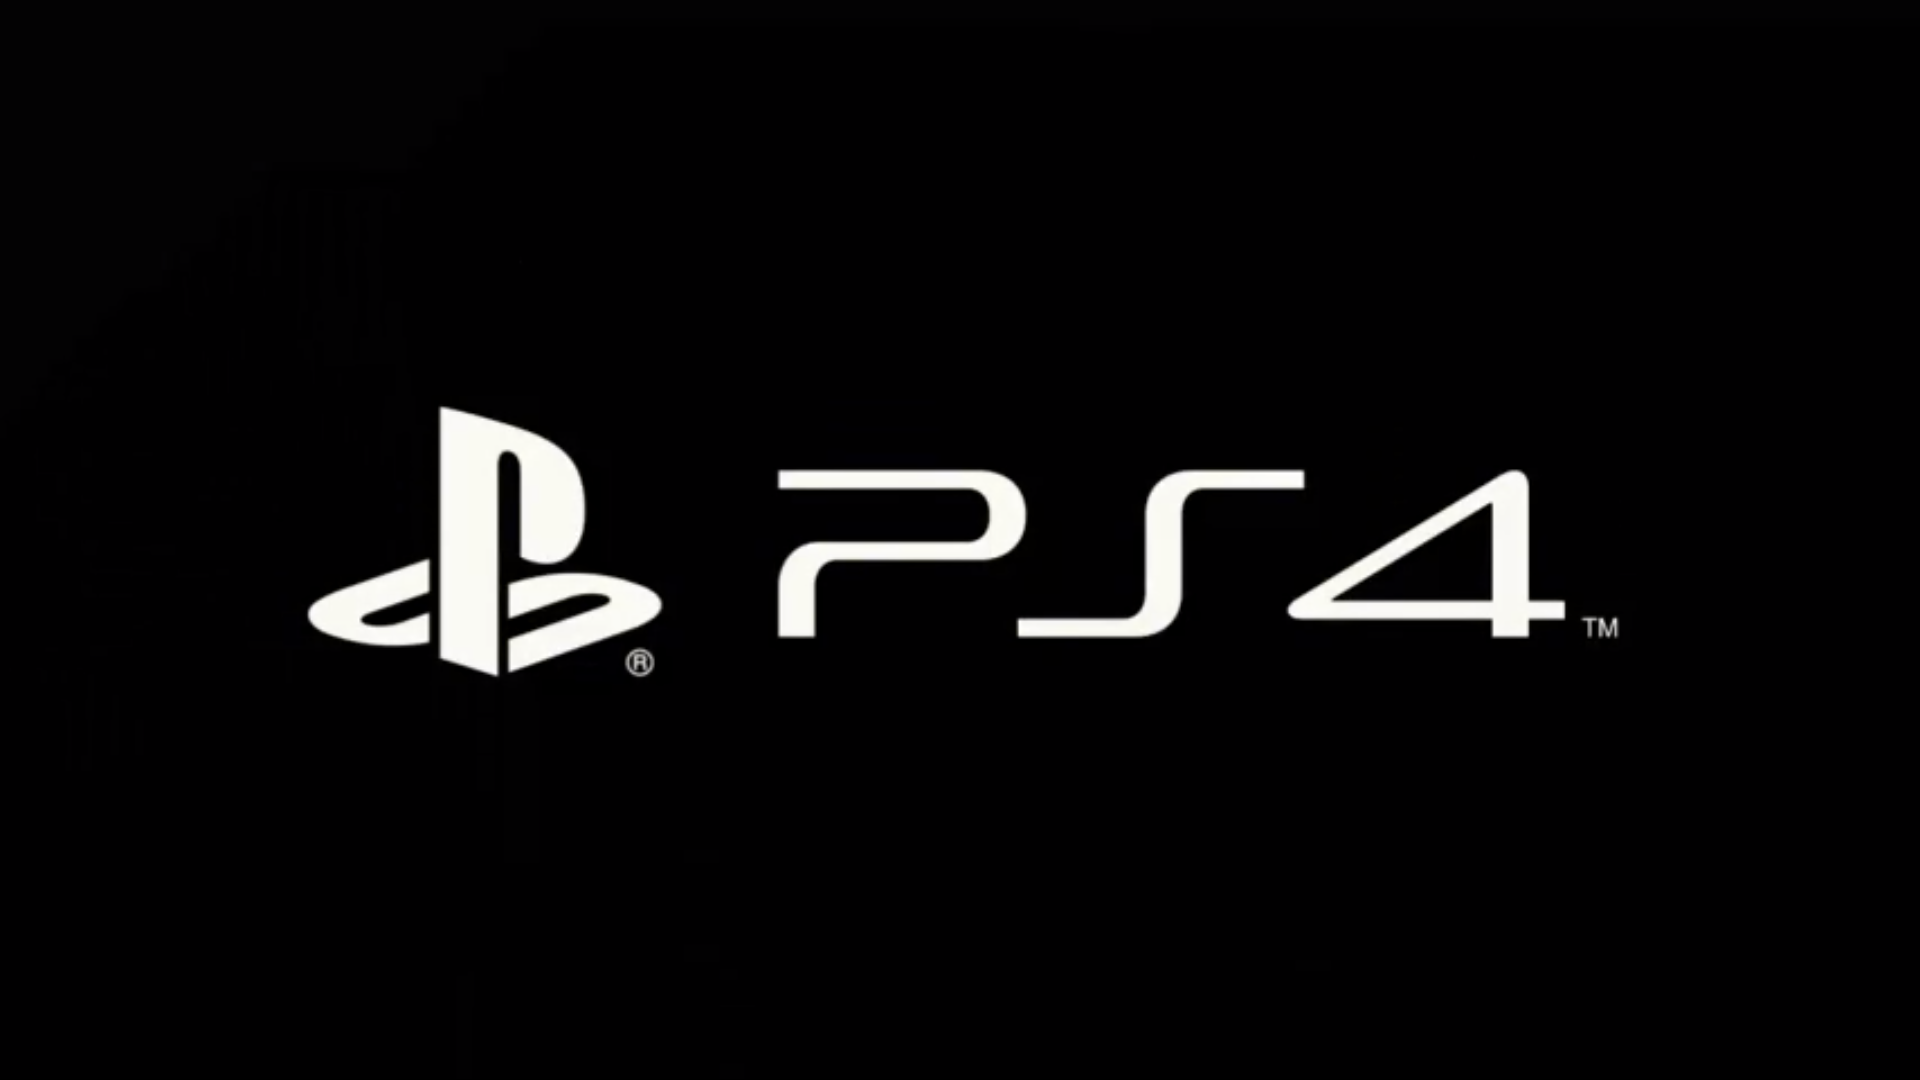 DOWNLOAD WALLPAPER PS4 logo FULL SIZE Gaming